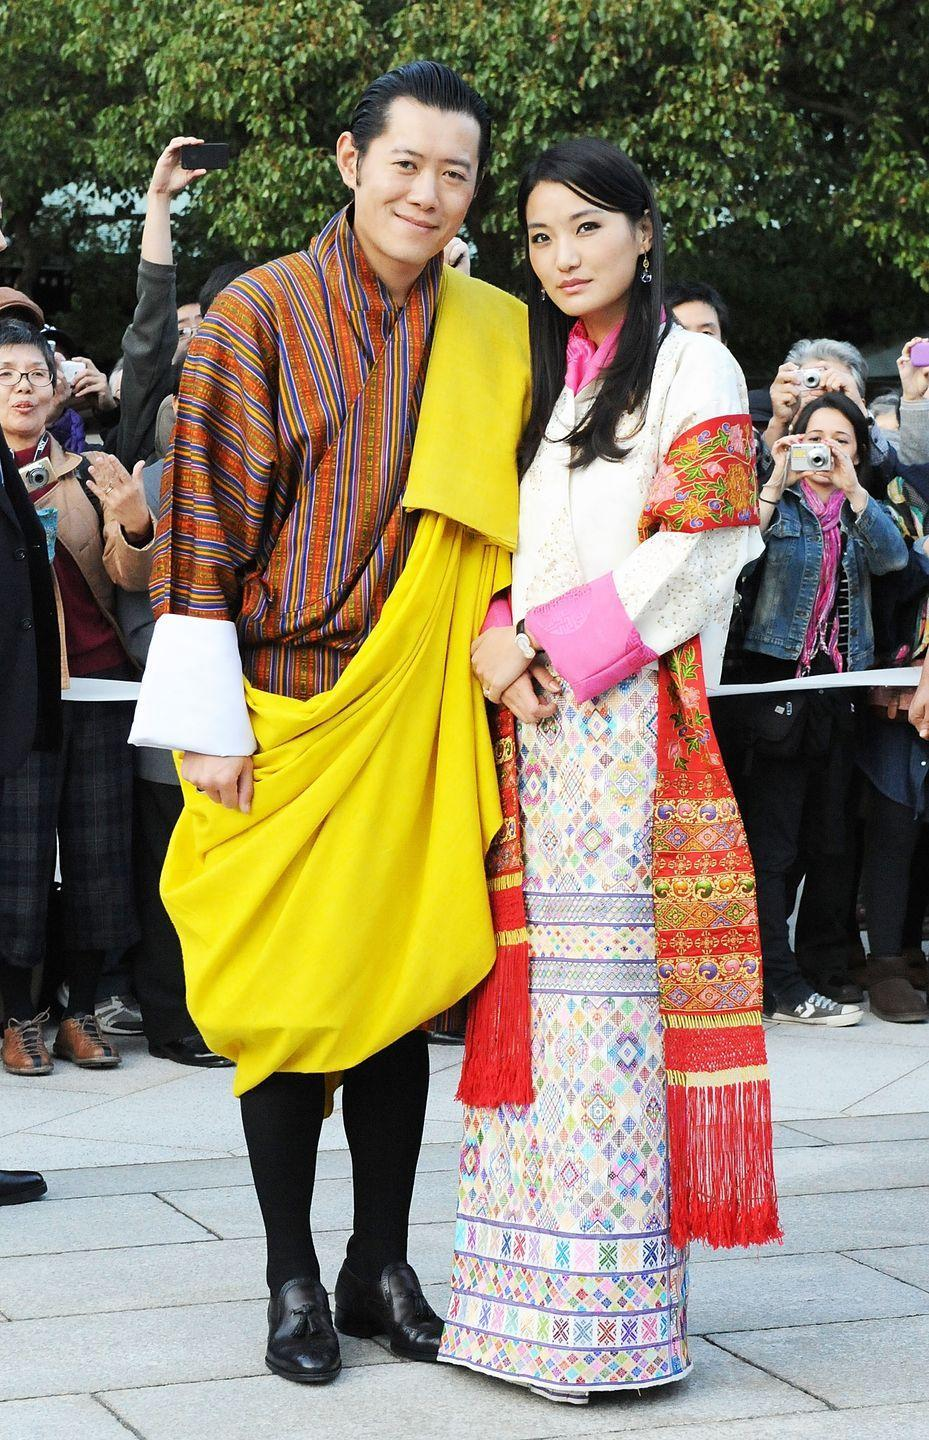 "<p>King Jigme Khesar Namgyel Wangchuck, 40, and his wife Jetsun Pema, 29, first met when she was just 7 years old at a picnic. Although Jetsun Pema is considered a commoner, her family has many connections with the royal family and it's said that at the picnic, she <a href=""http://www.worldofbuzz.com/real-life-cinderella-story/"" rel=""nofollow noopener"" target=""_blank"" data-ylk=""slk:innocently confessed her love"" class=""link rapid-noclick-resp"">innocently confessed her love</a> for the dashing prince. Her childish confession caught the prince's heart and he promised that when she grew up and if they were both single and in love, he would marry her. The two later married in 2011, and gave birth to a son in 2016.</p>"